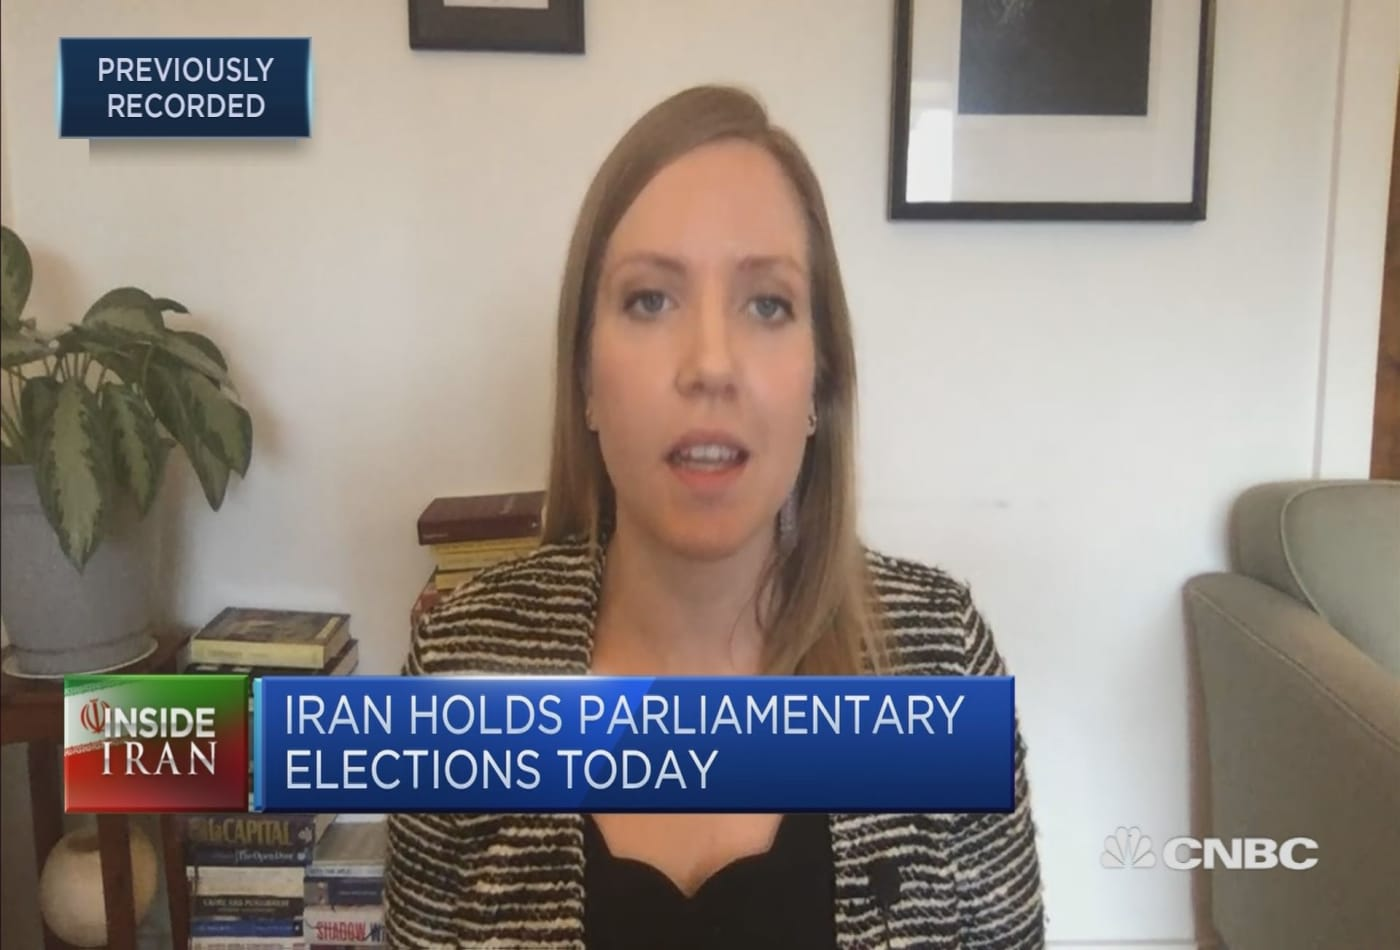 Expect a more conservative parliament to win Iran elections, says analyst